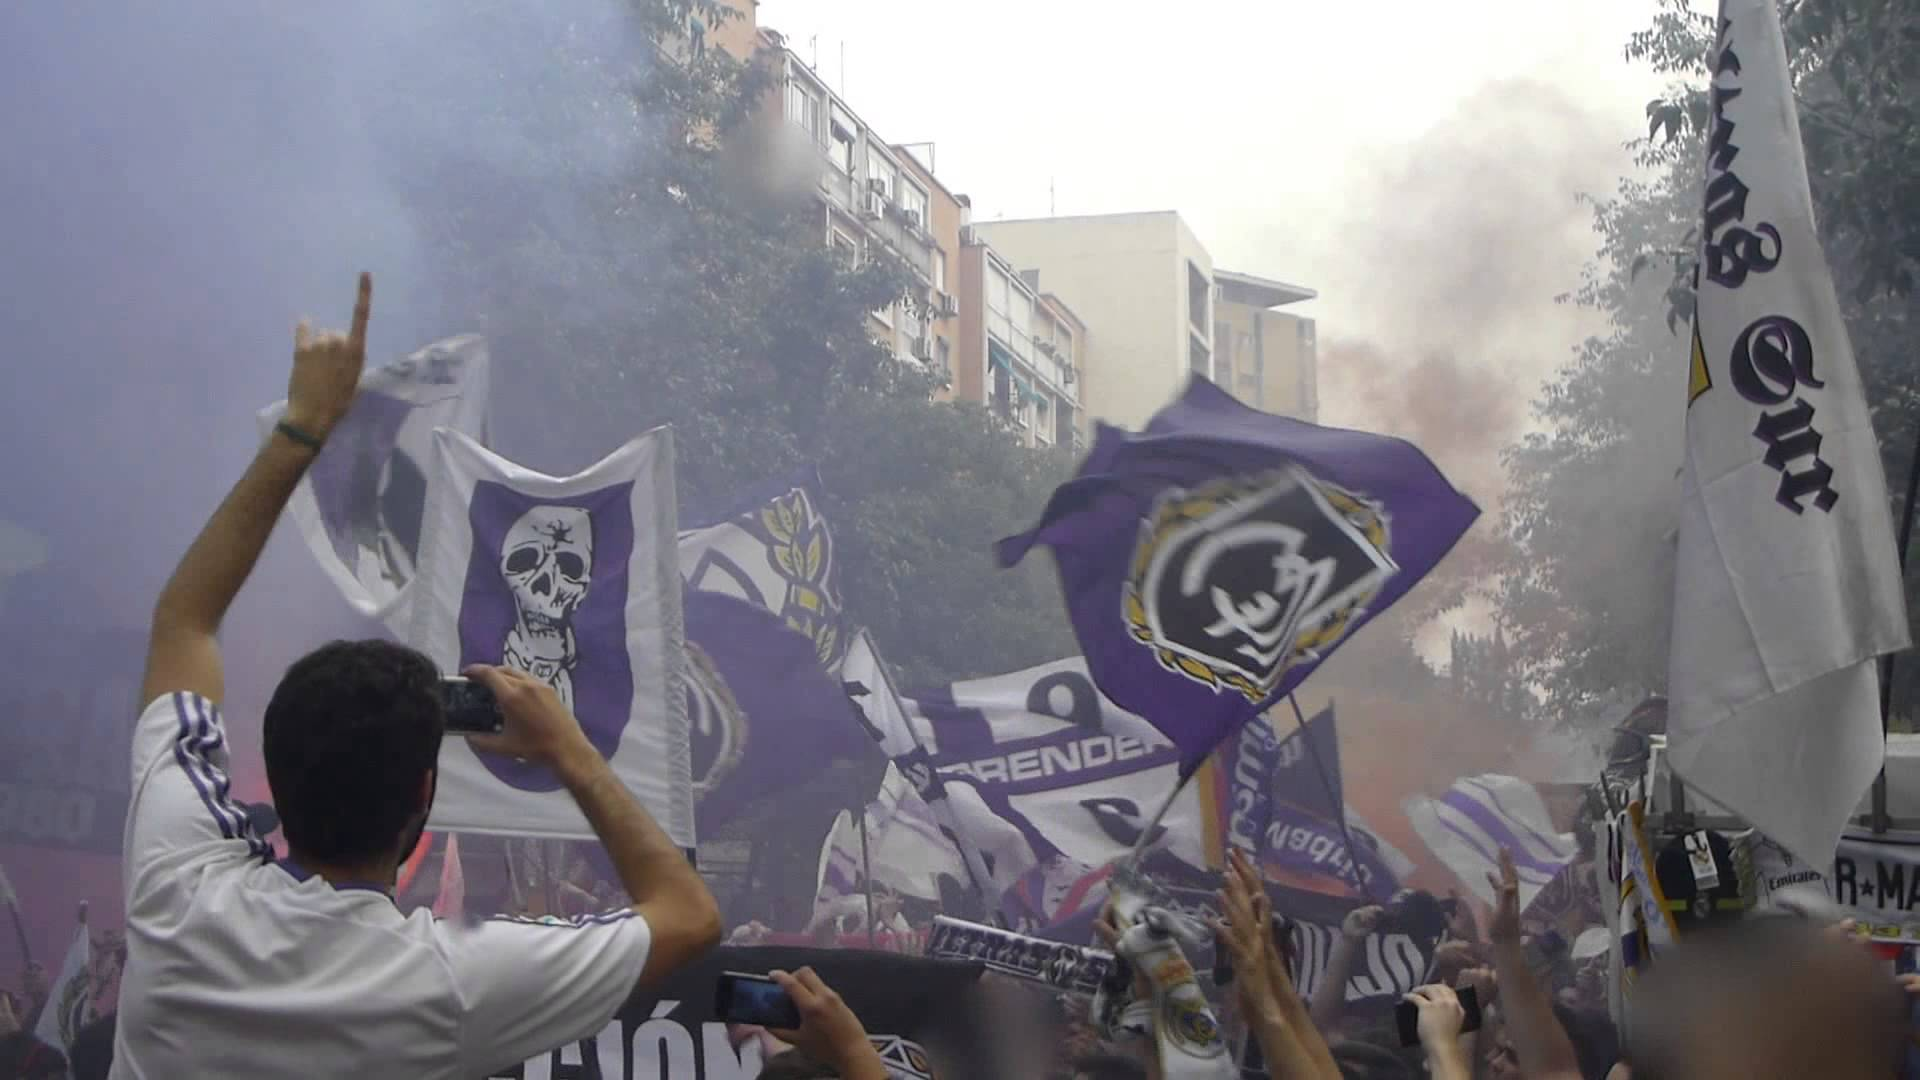 Ultras Sur, Real Madrid